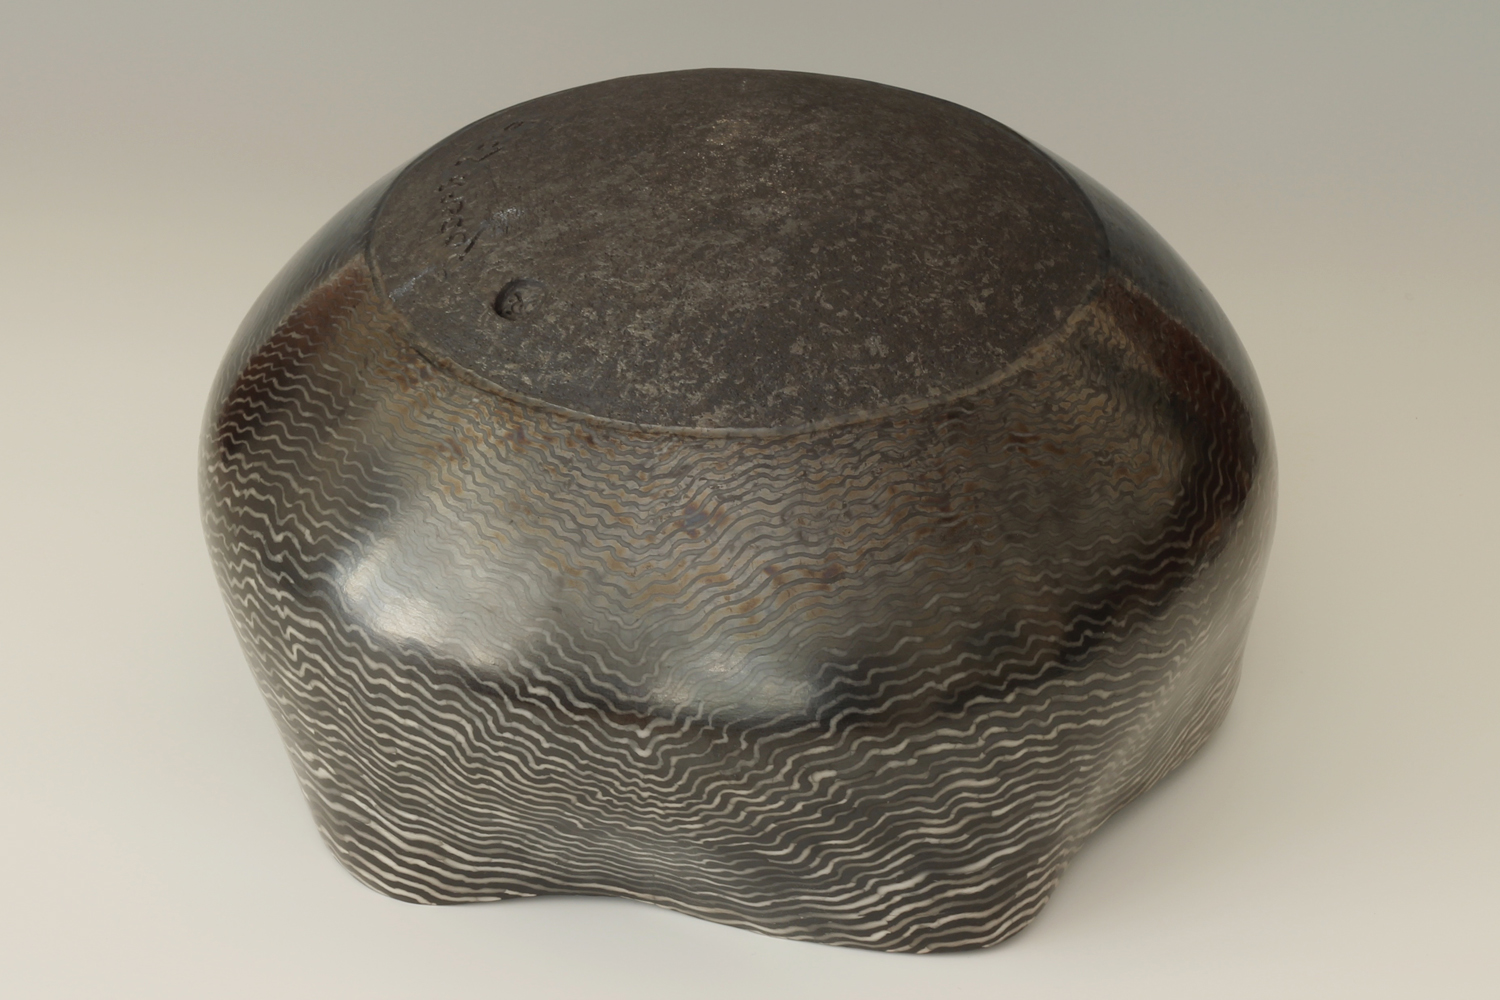 David Roberts Ceramic 'Ripple Bowl'